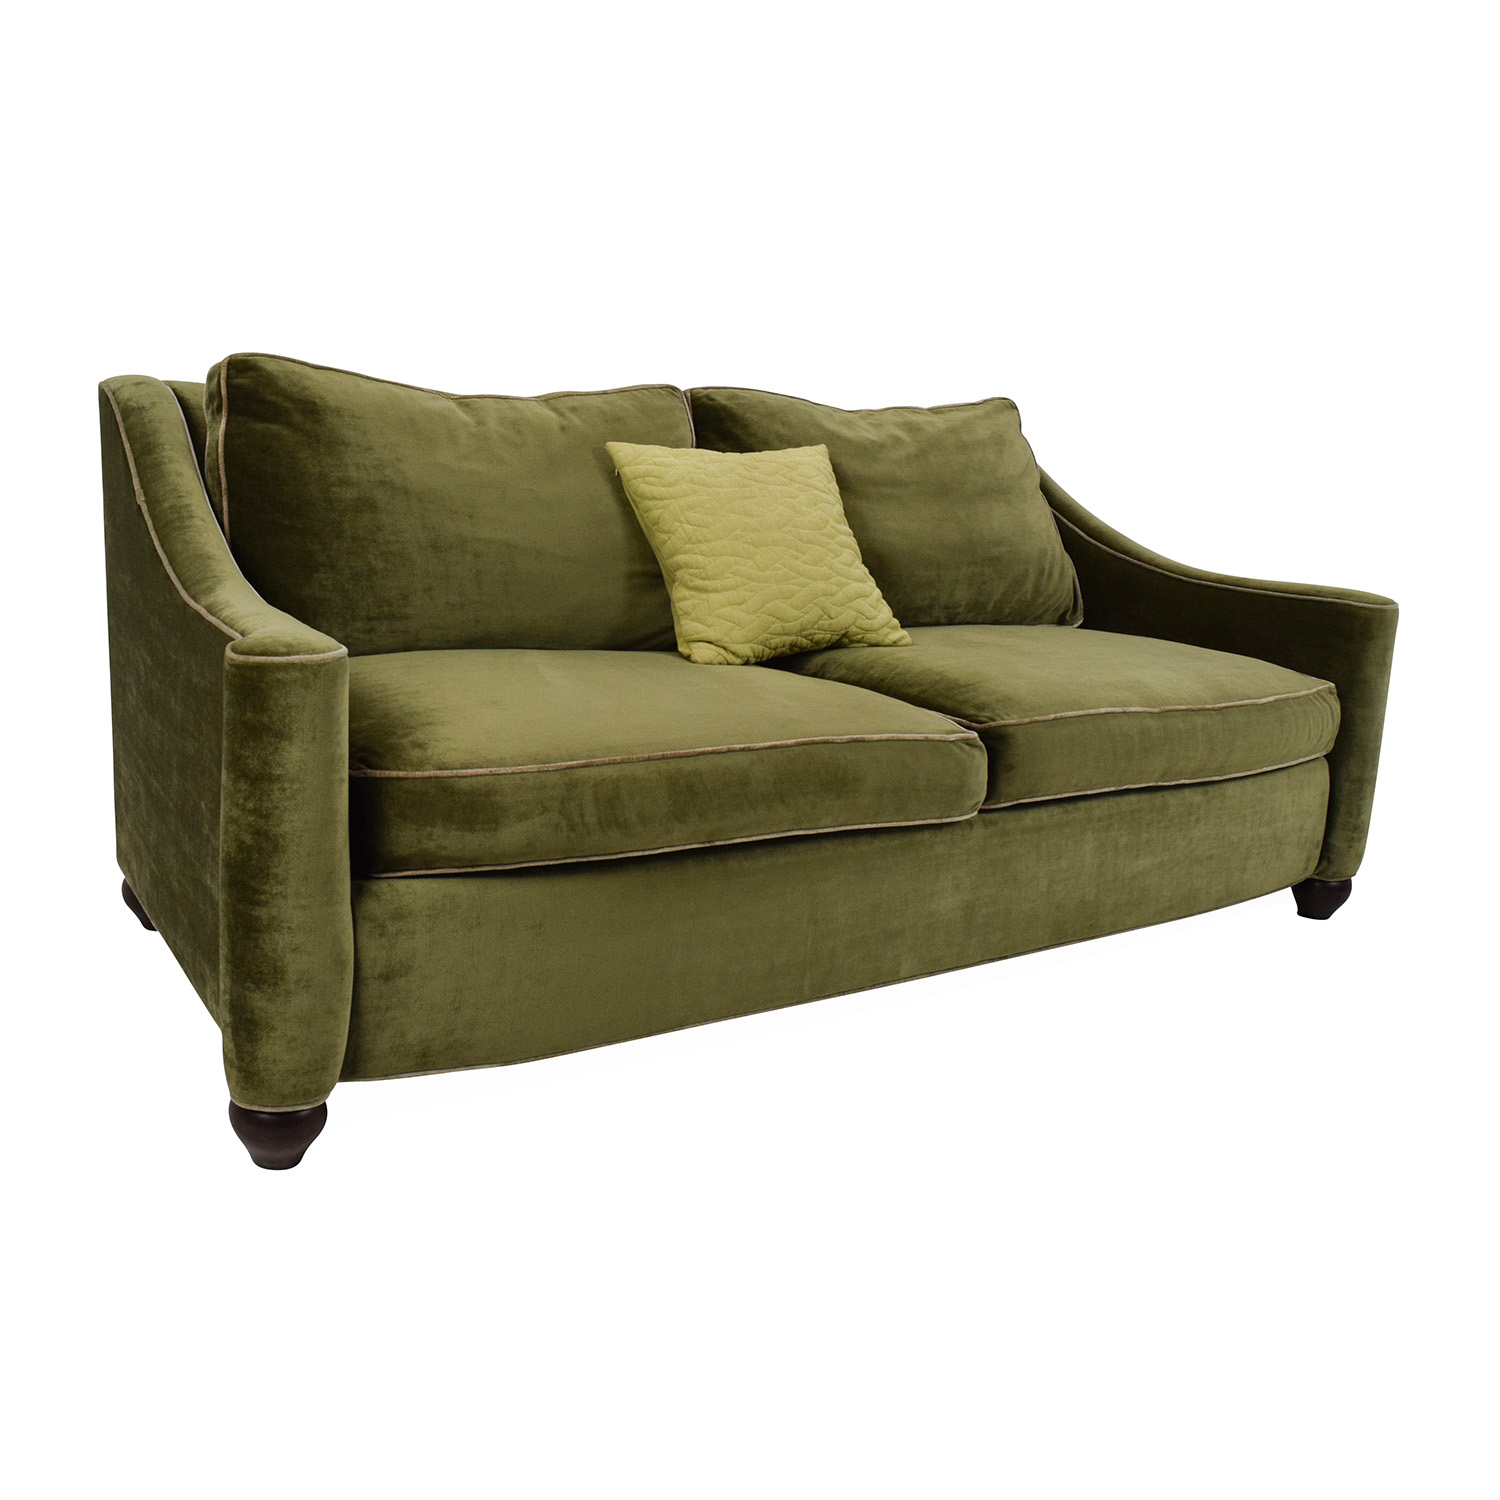 80 off domain home domain home classic sofa sofas for Classic loveseat